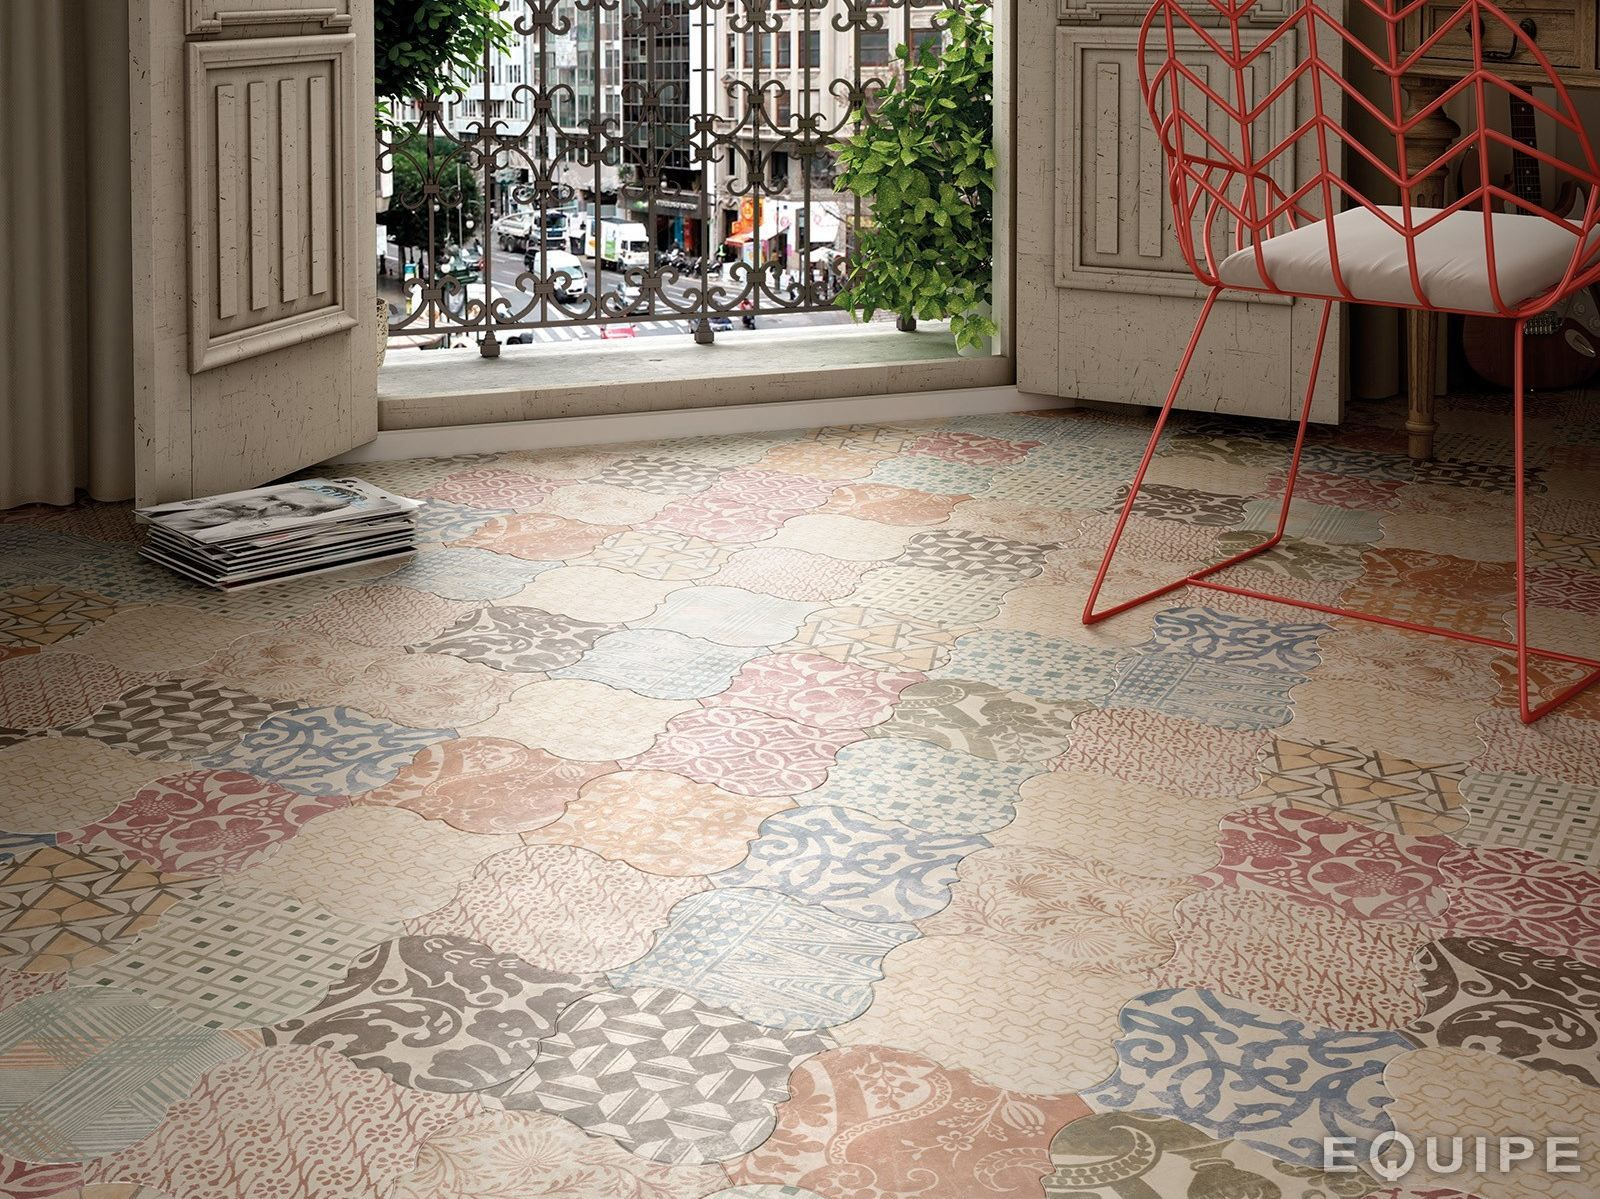 21 arabesque tile ideas for floor wall and backsplash living weve just discovered these fantastic arabesque tiles with so much potential for floor dailygadgetfo Image collections